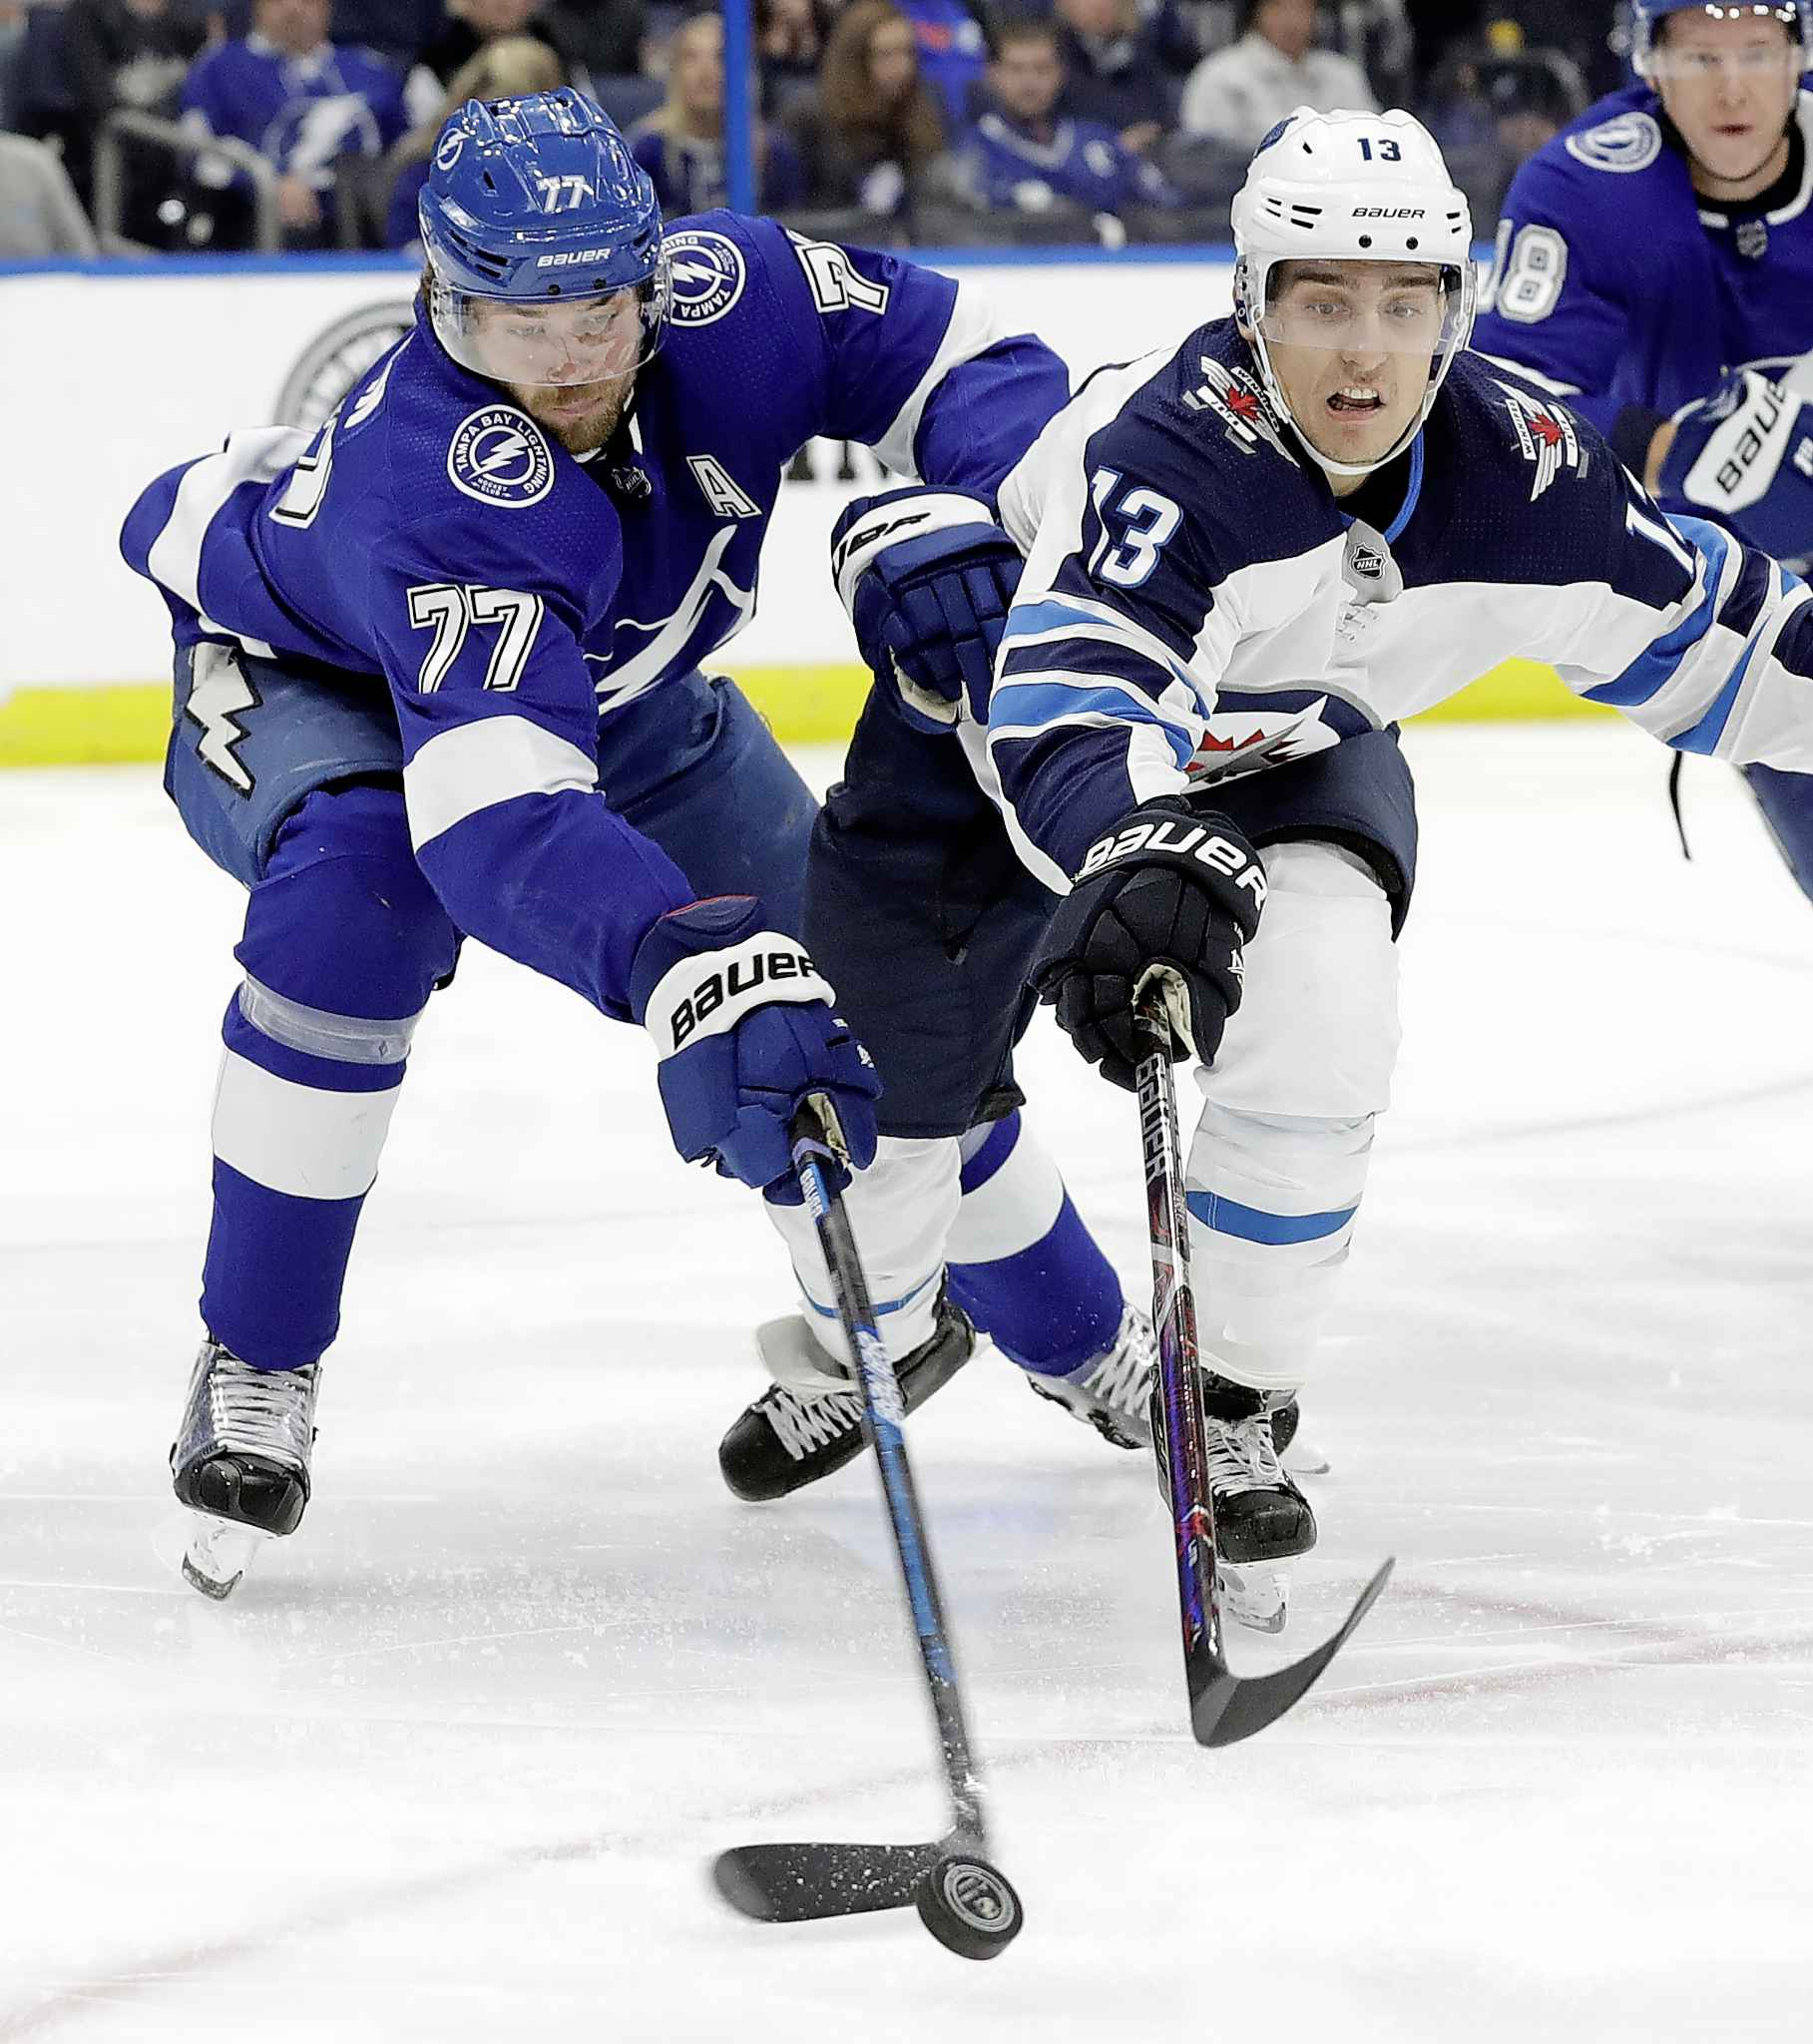 Winnipeg Jets left-winger Brandon Tanev will miss Game 1 due to injury, though he's not being rule out for the rest of the series. CHRIS O'MEARA / THE ASSOCIATED PRESS FILES